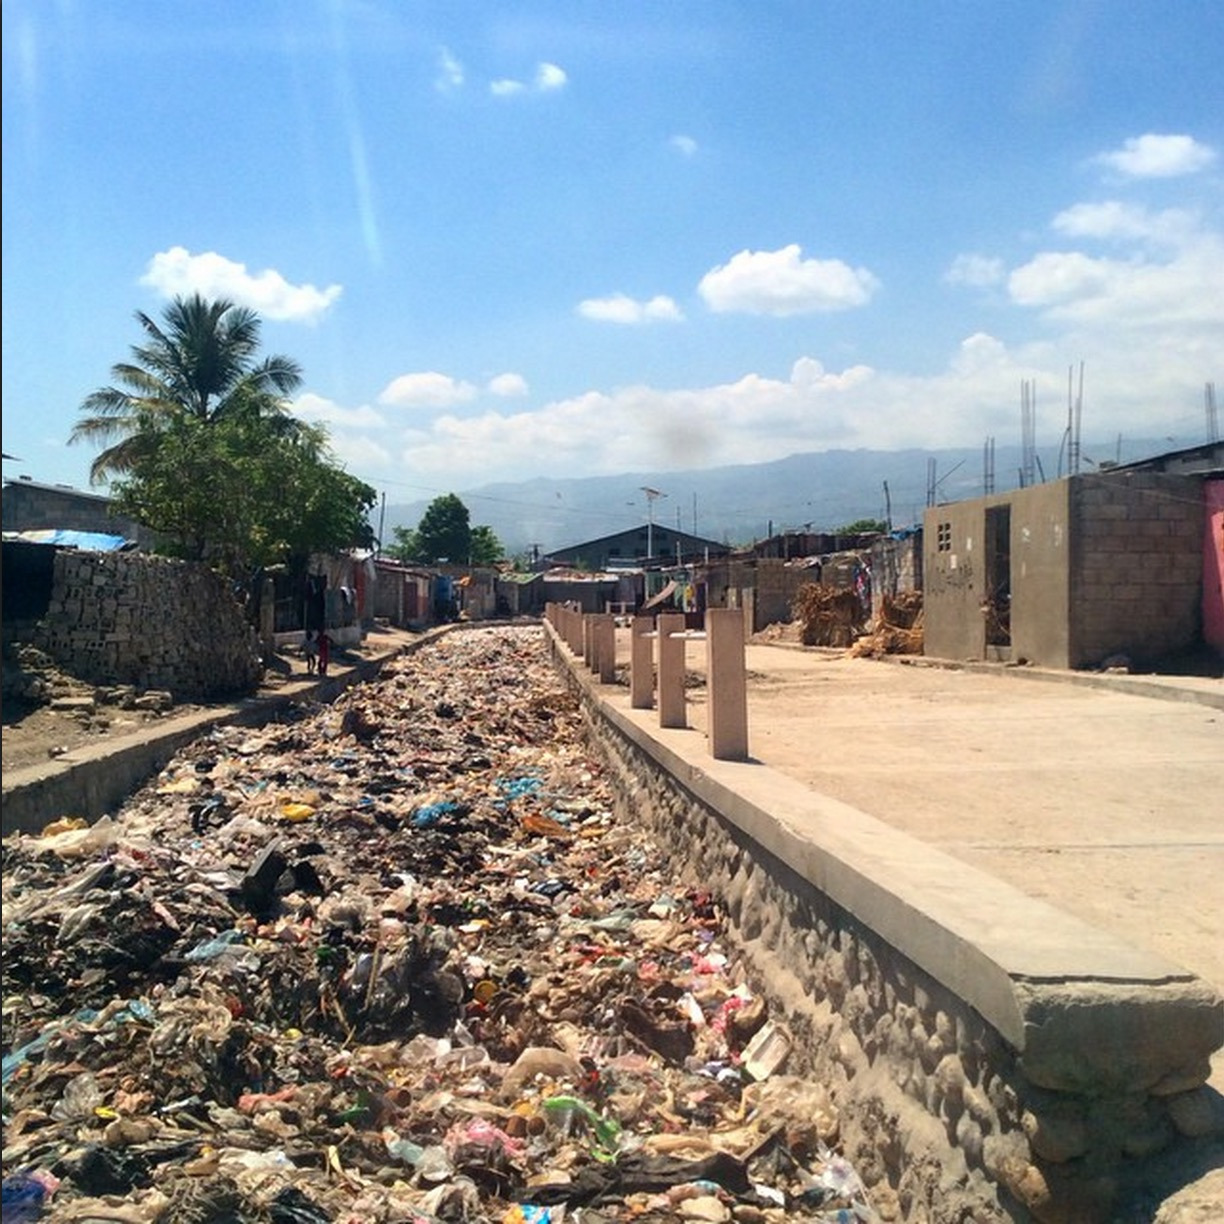 Cite Soleil lies at the lowest point of Port-au-Prince